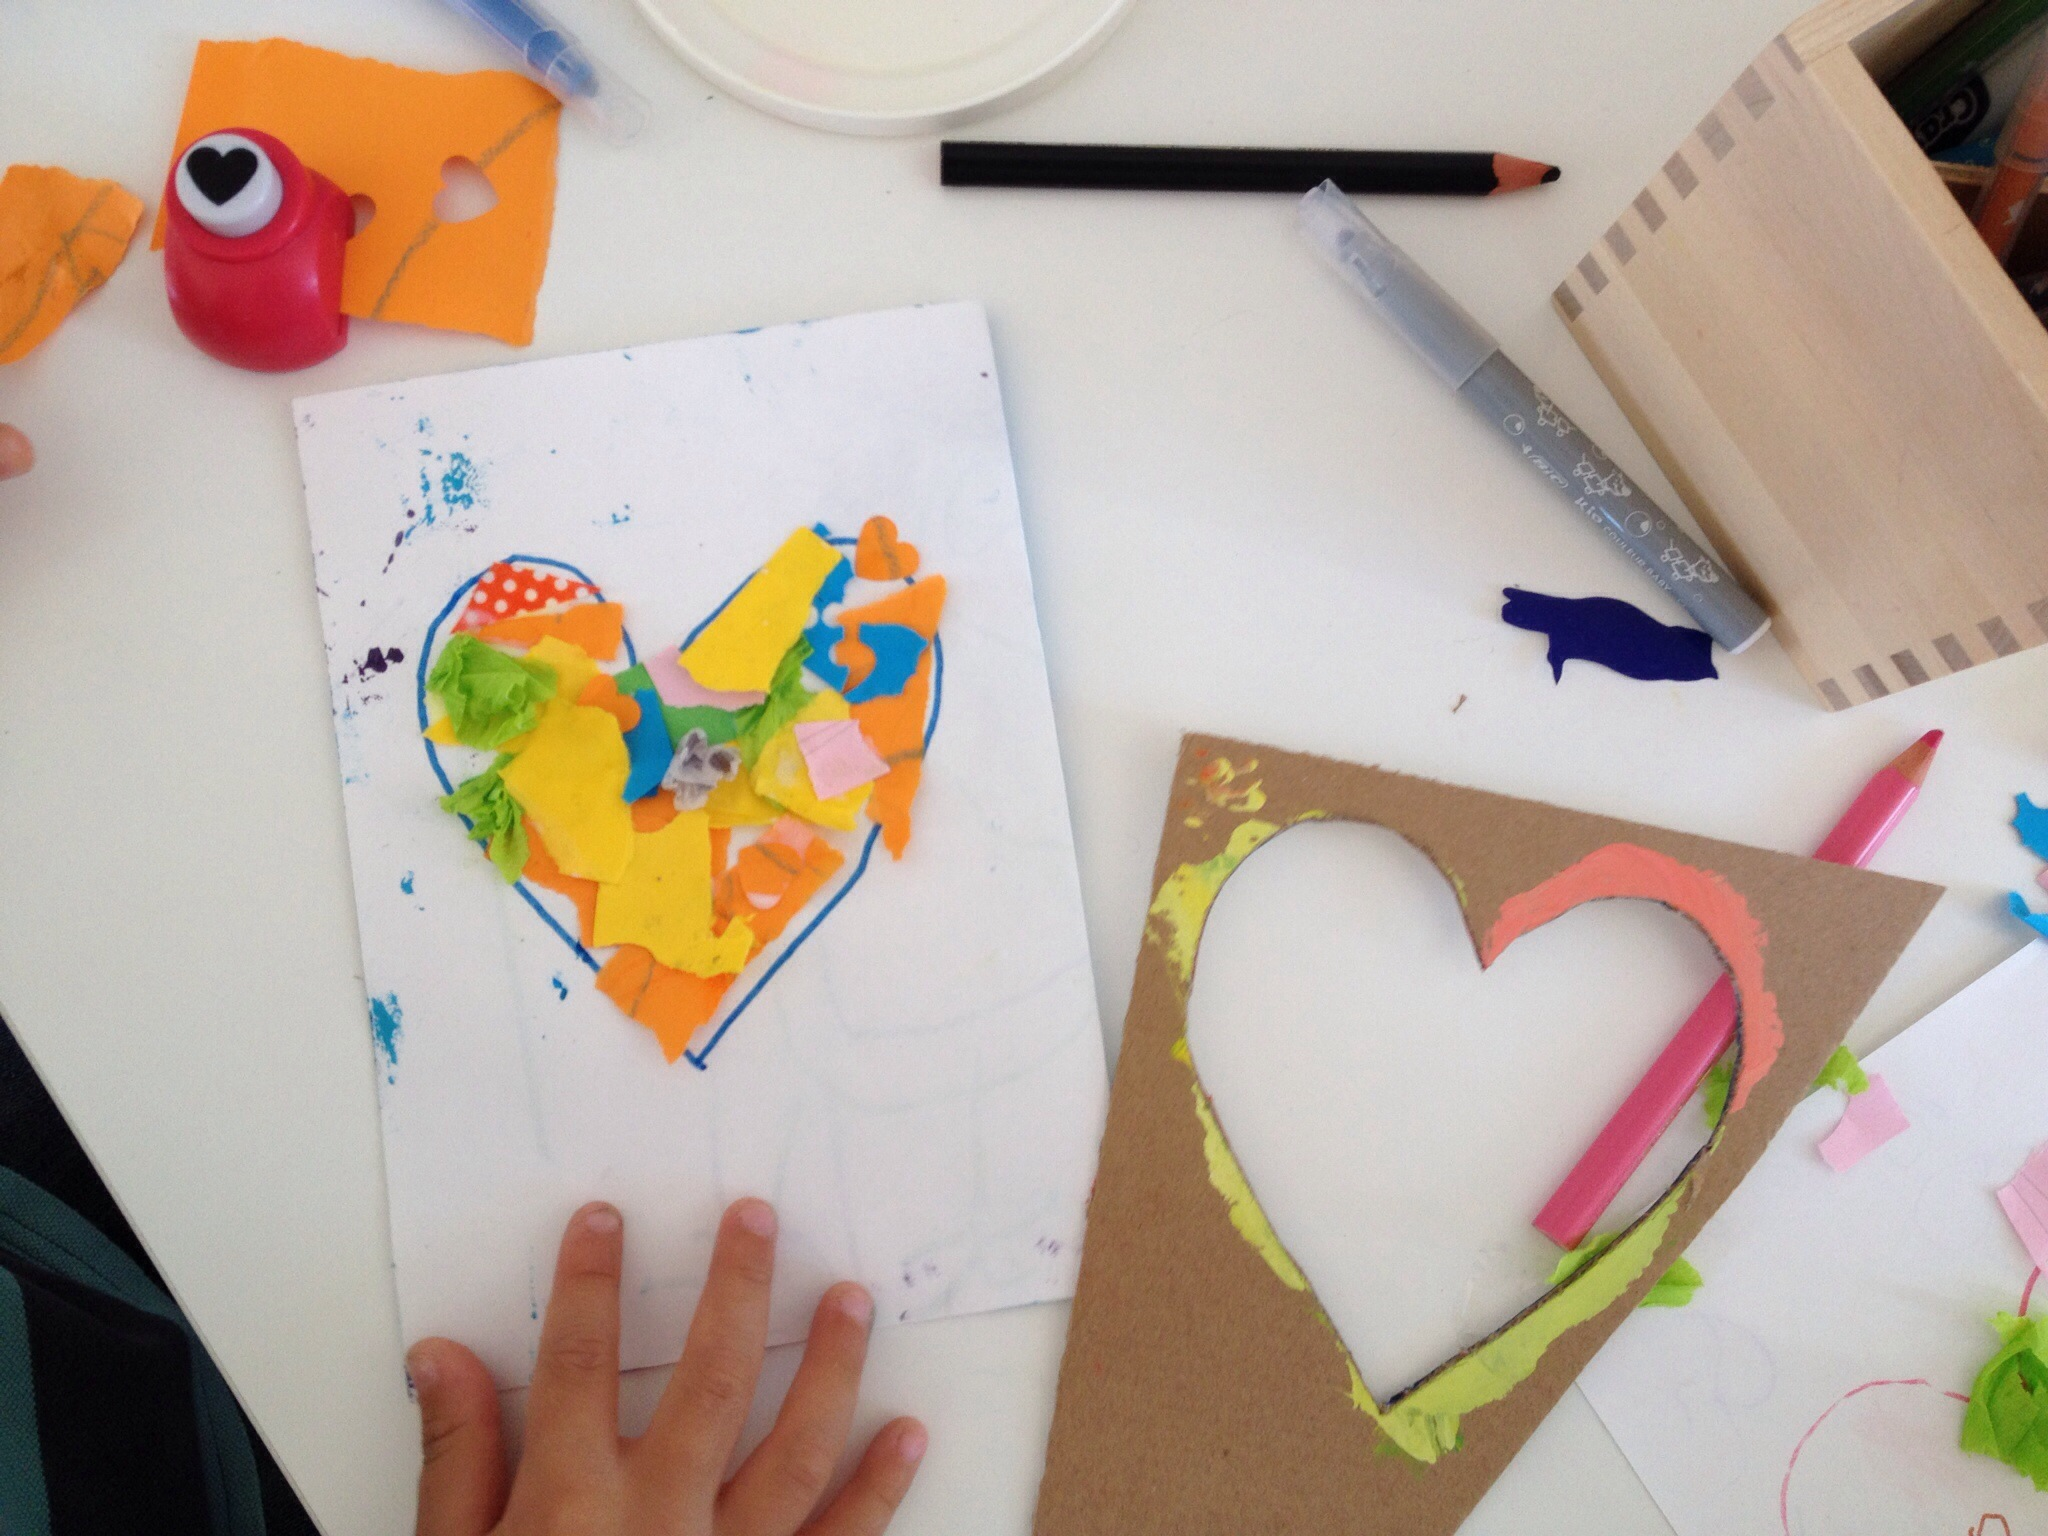 Here's an example of a finished heart on a card.